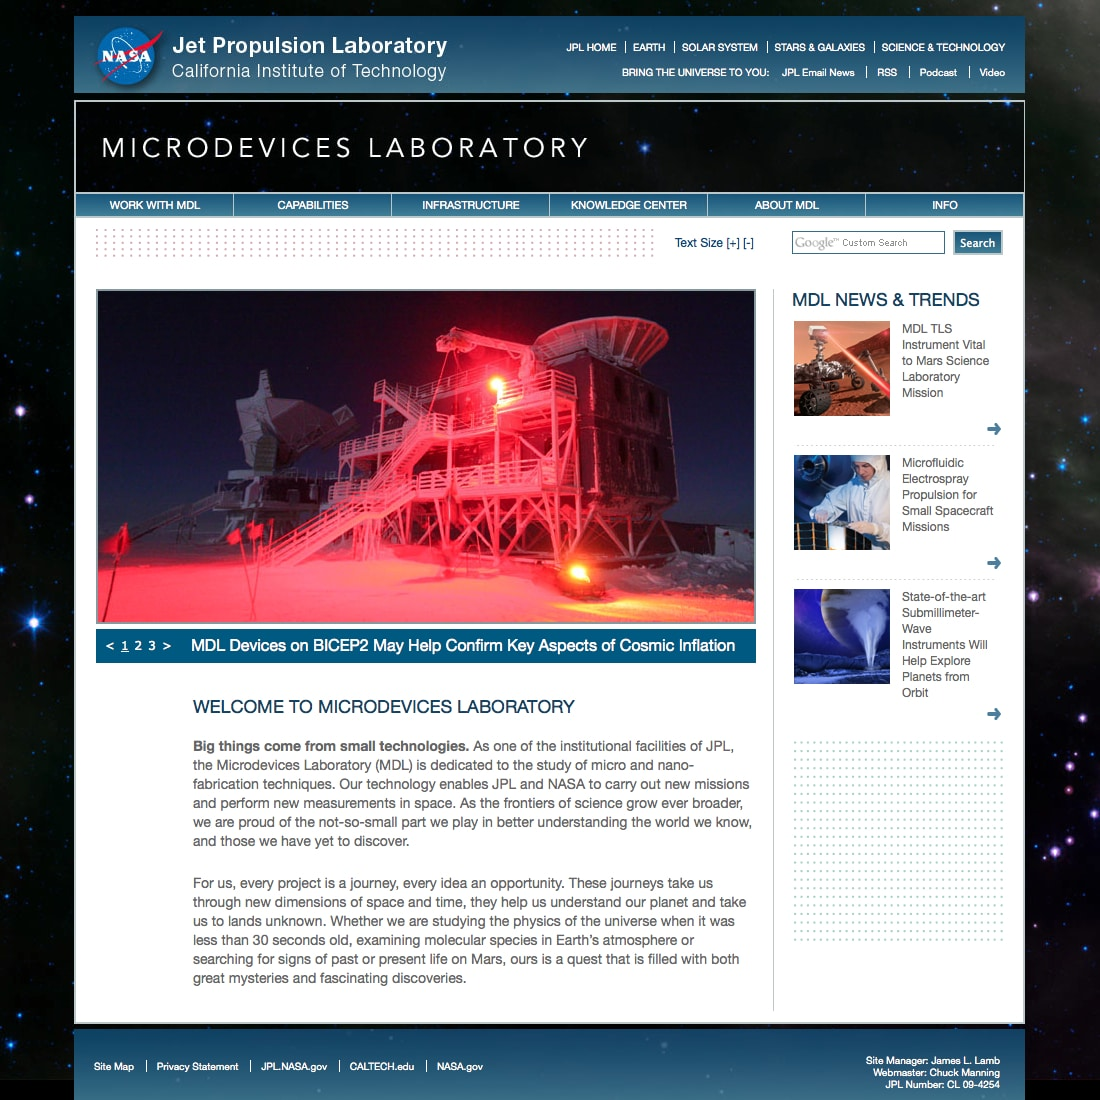 Microdevices Laboratory | NASA Jet Propulsion Laboratory California Institute of Technology